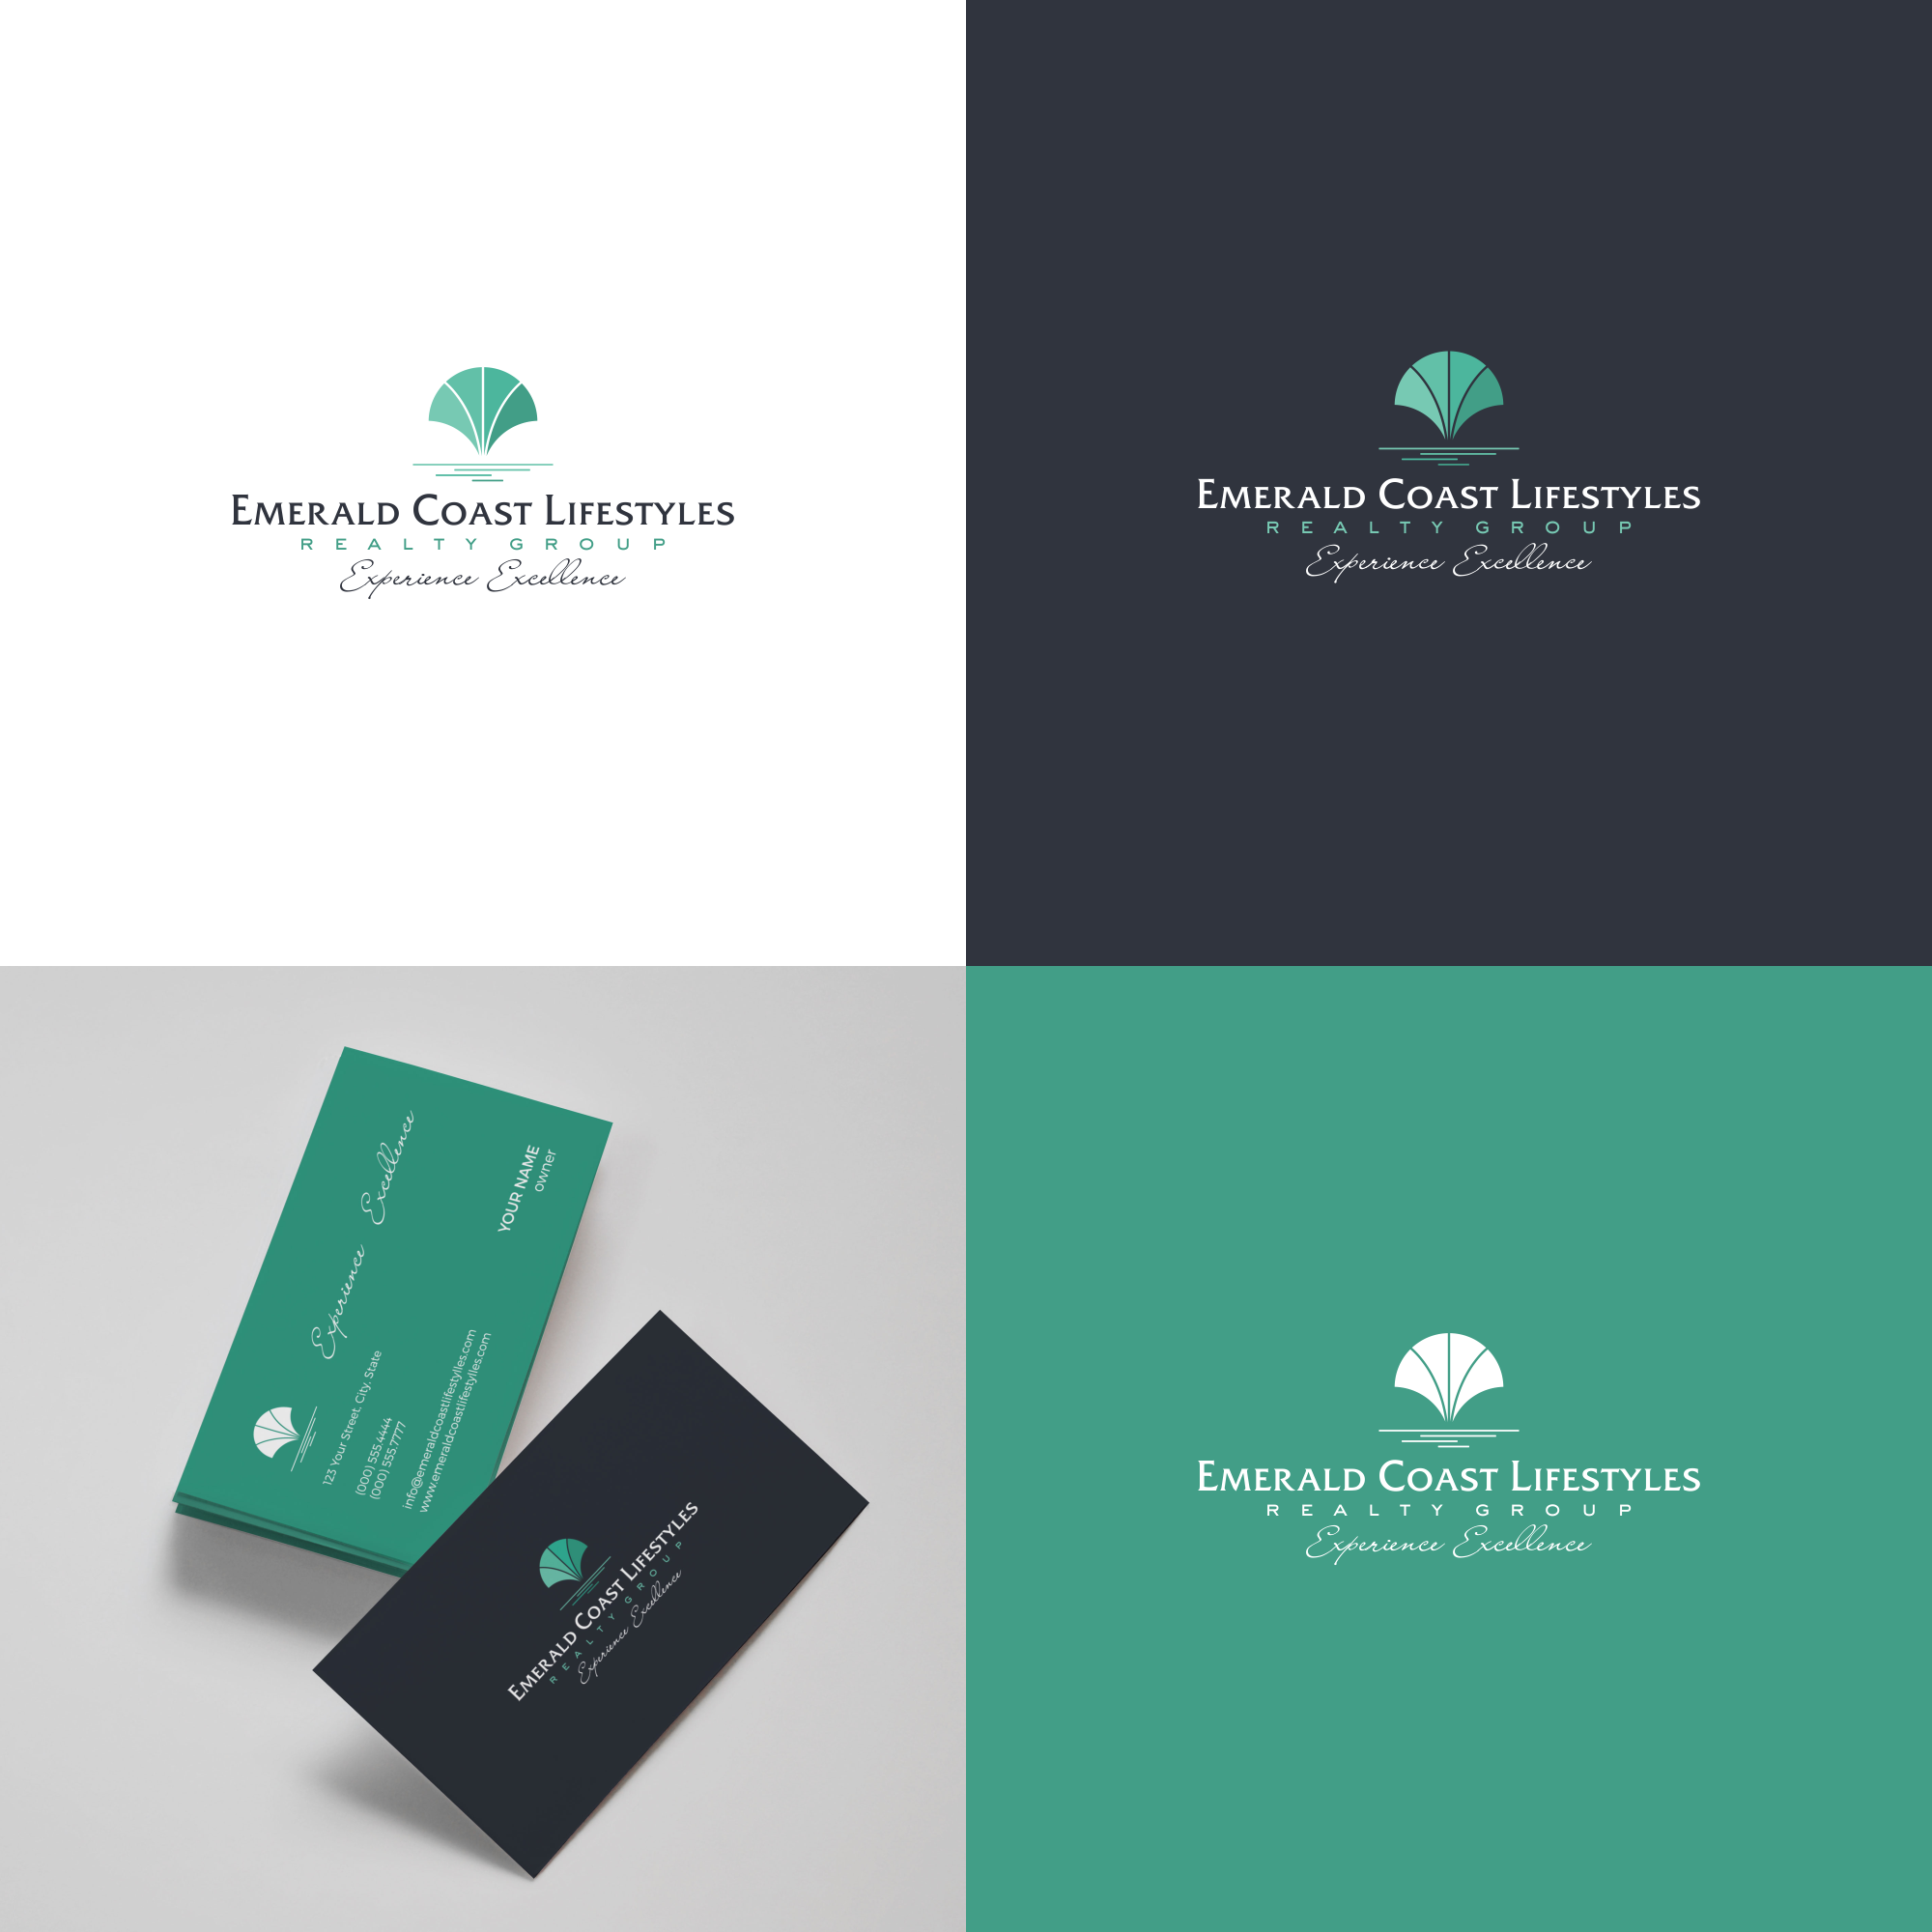 Emerald Coast Lifestyles business card